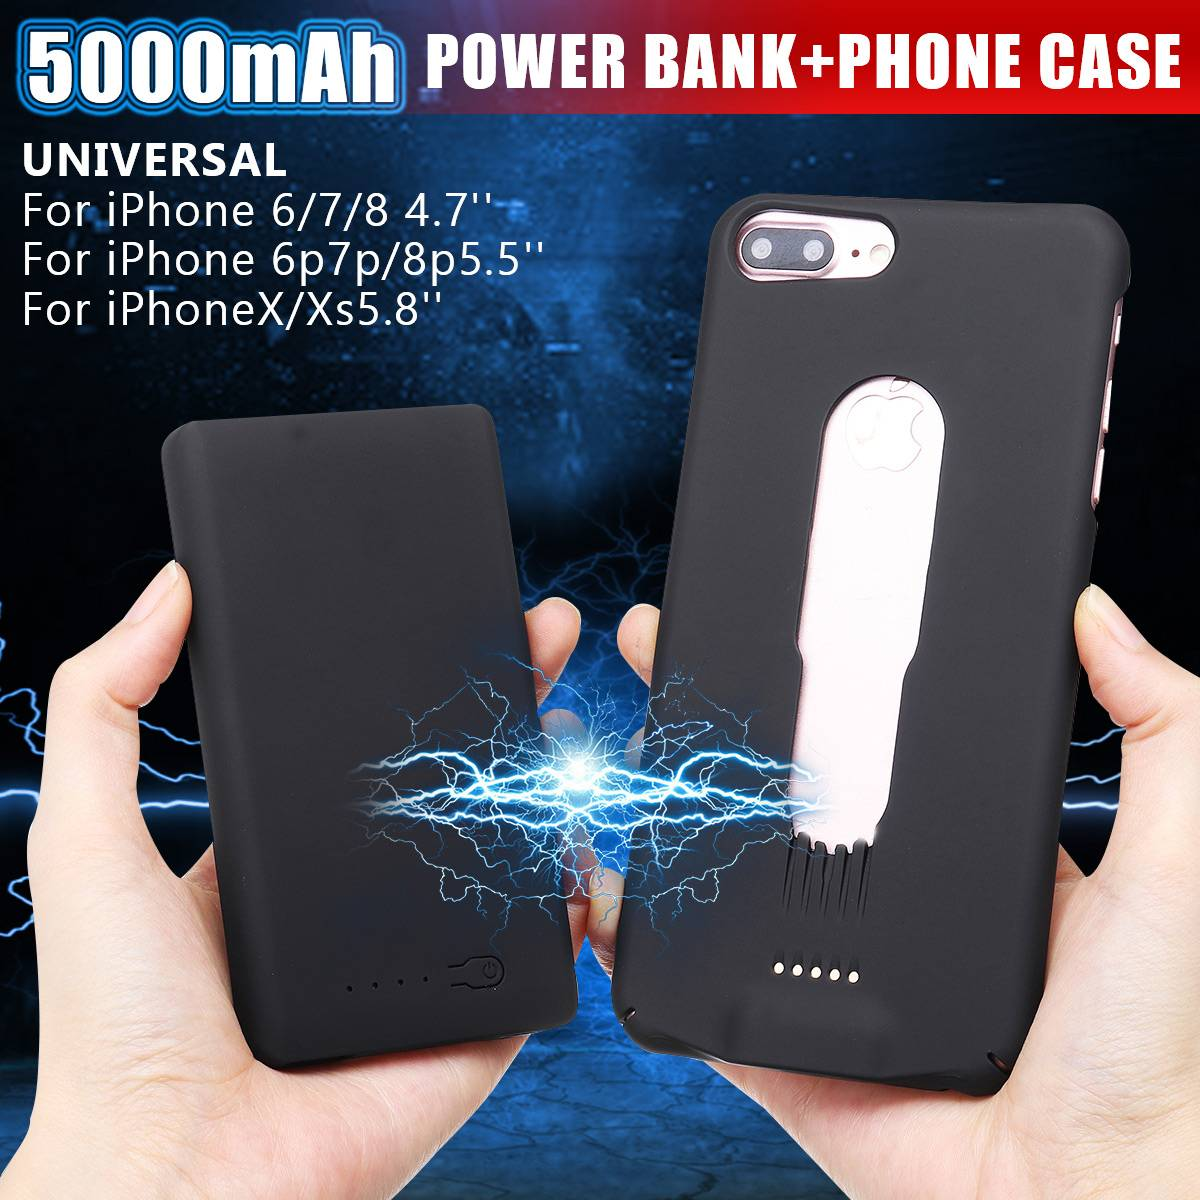 Phone Bags & Cases Leory Battery Charger Cases For Iphone 6 6plus 7 7plus 8 8plus X 5000mah Portable Power Bank Backup Charger Case